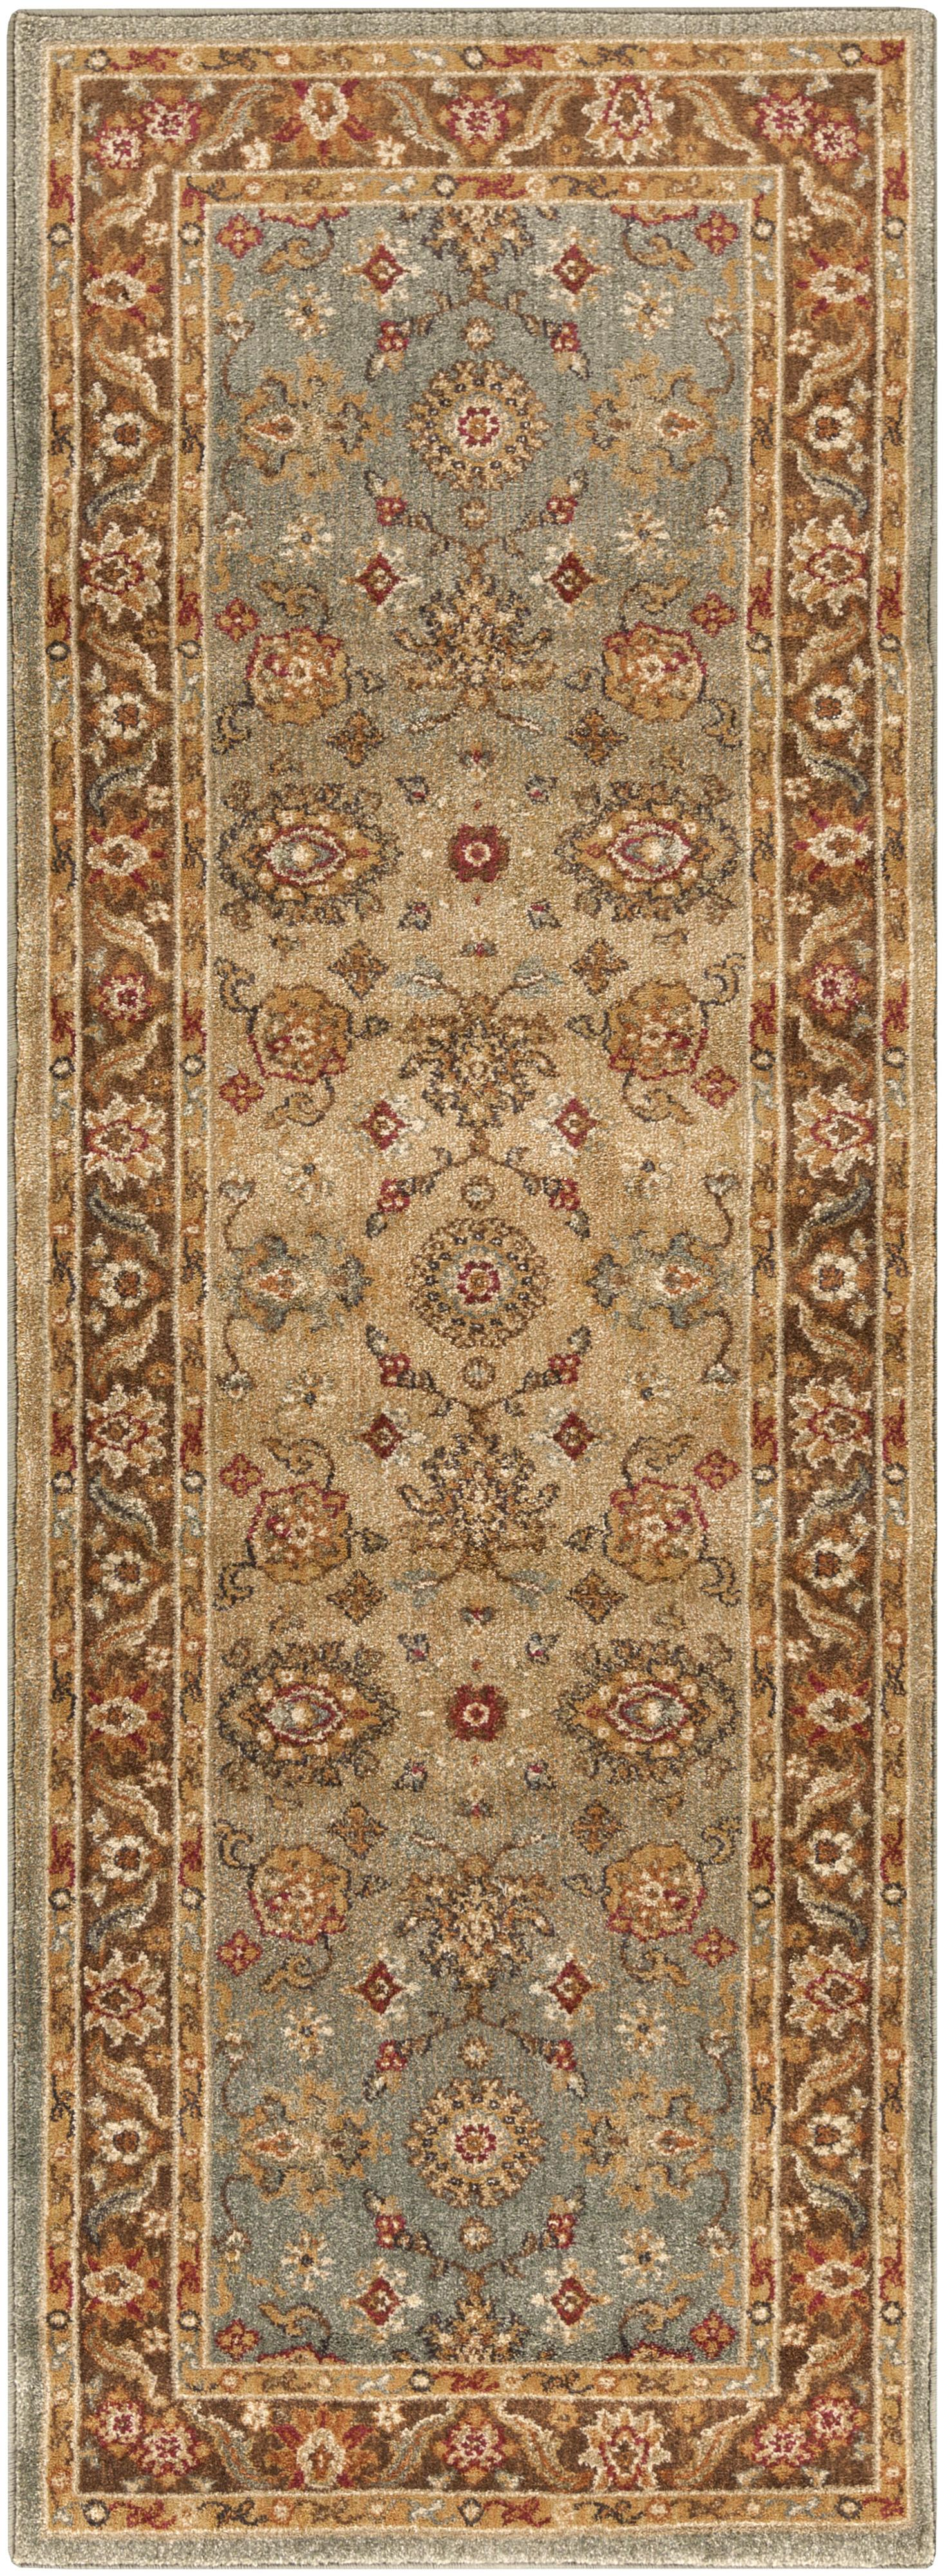 "Surya Rugs Arabesque 2'7"" x 7'3"" - Item Number: ABS3011-2773"